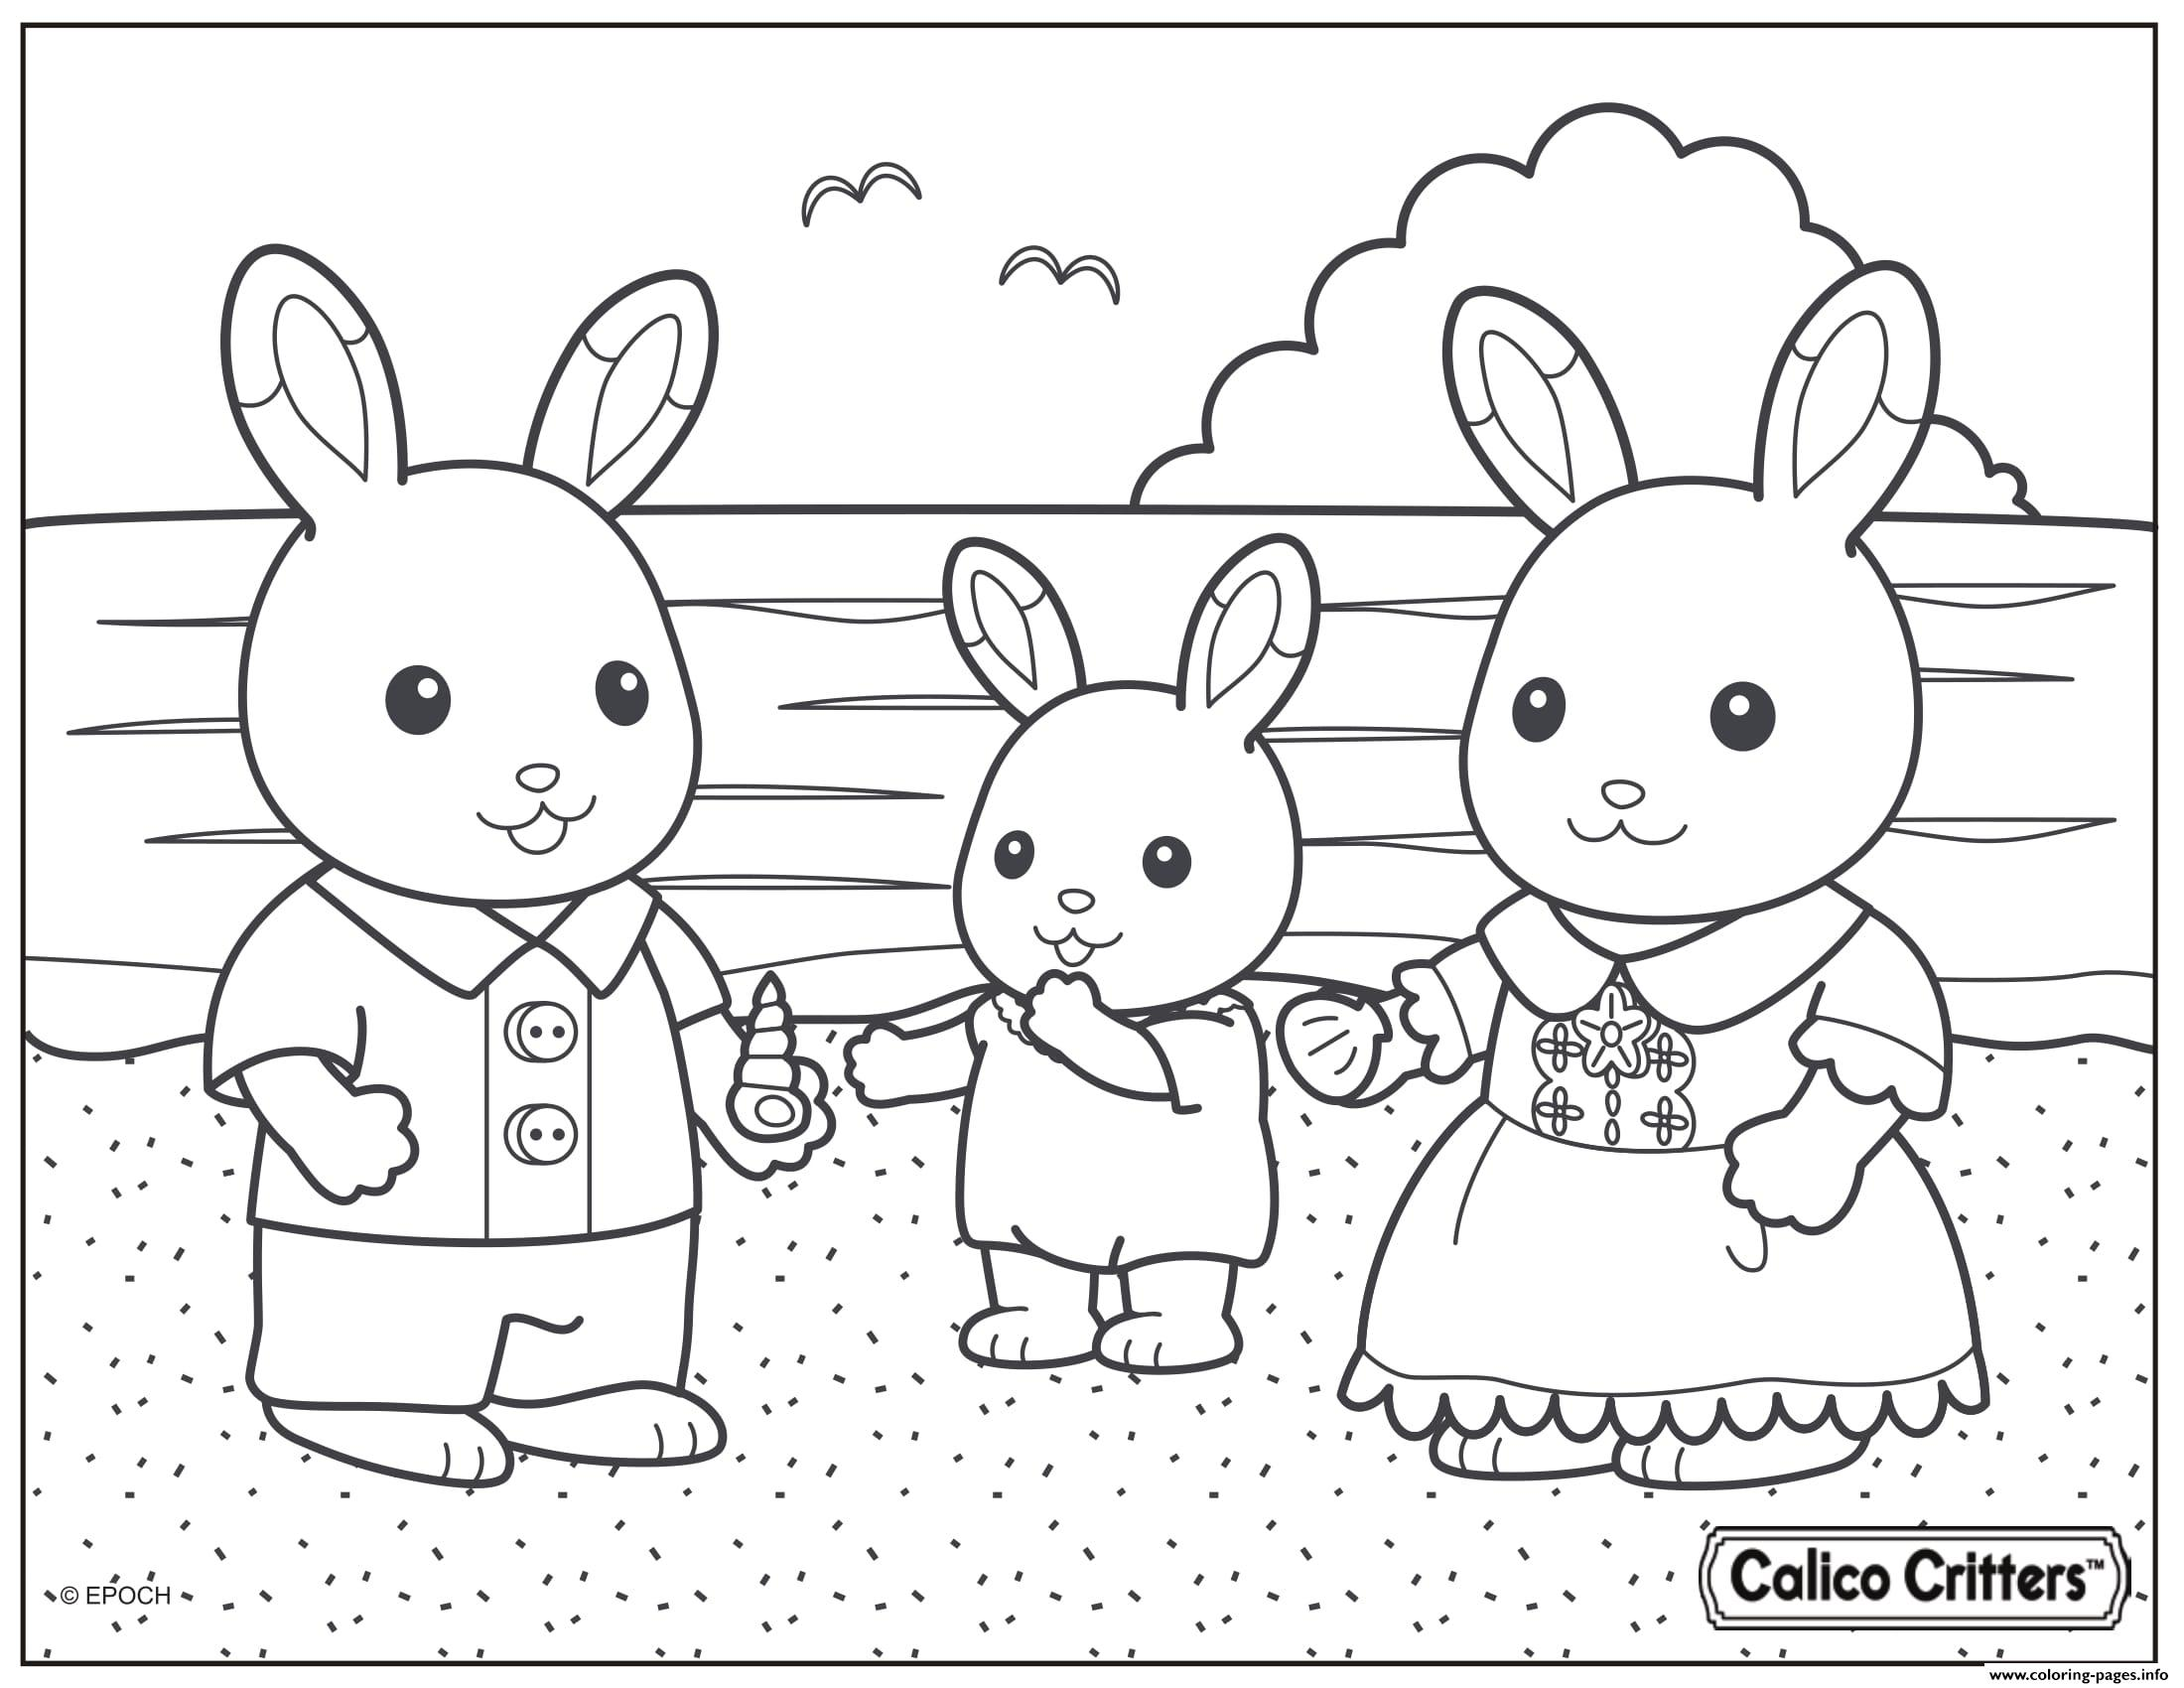 Calico Critters Beach Shell Coloring